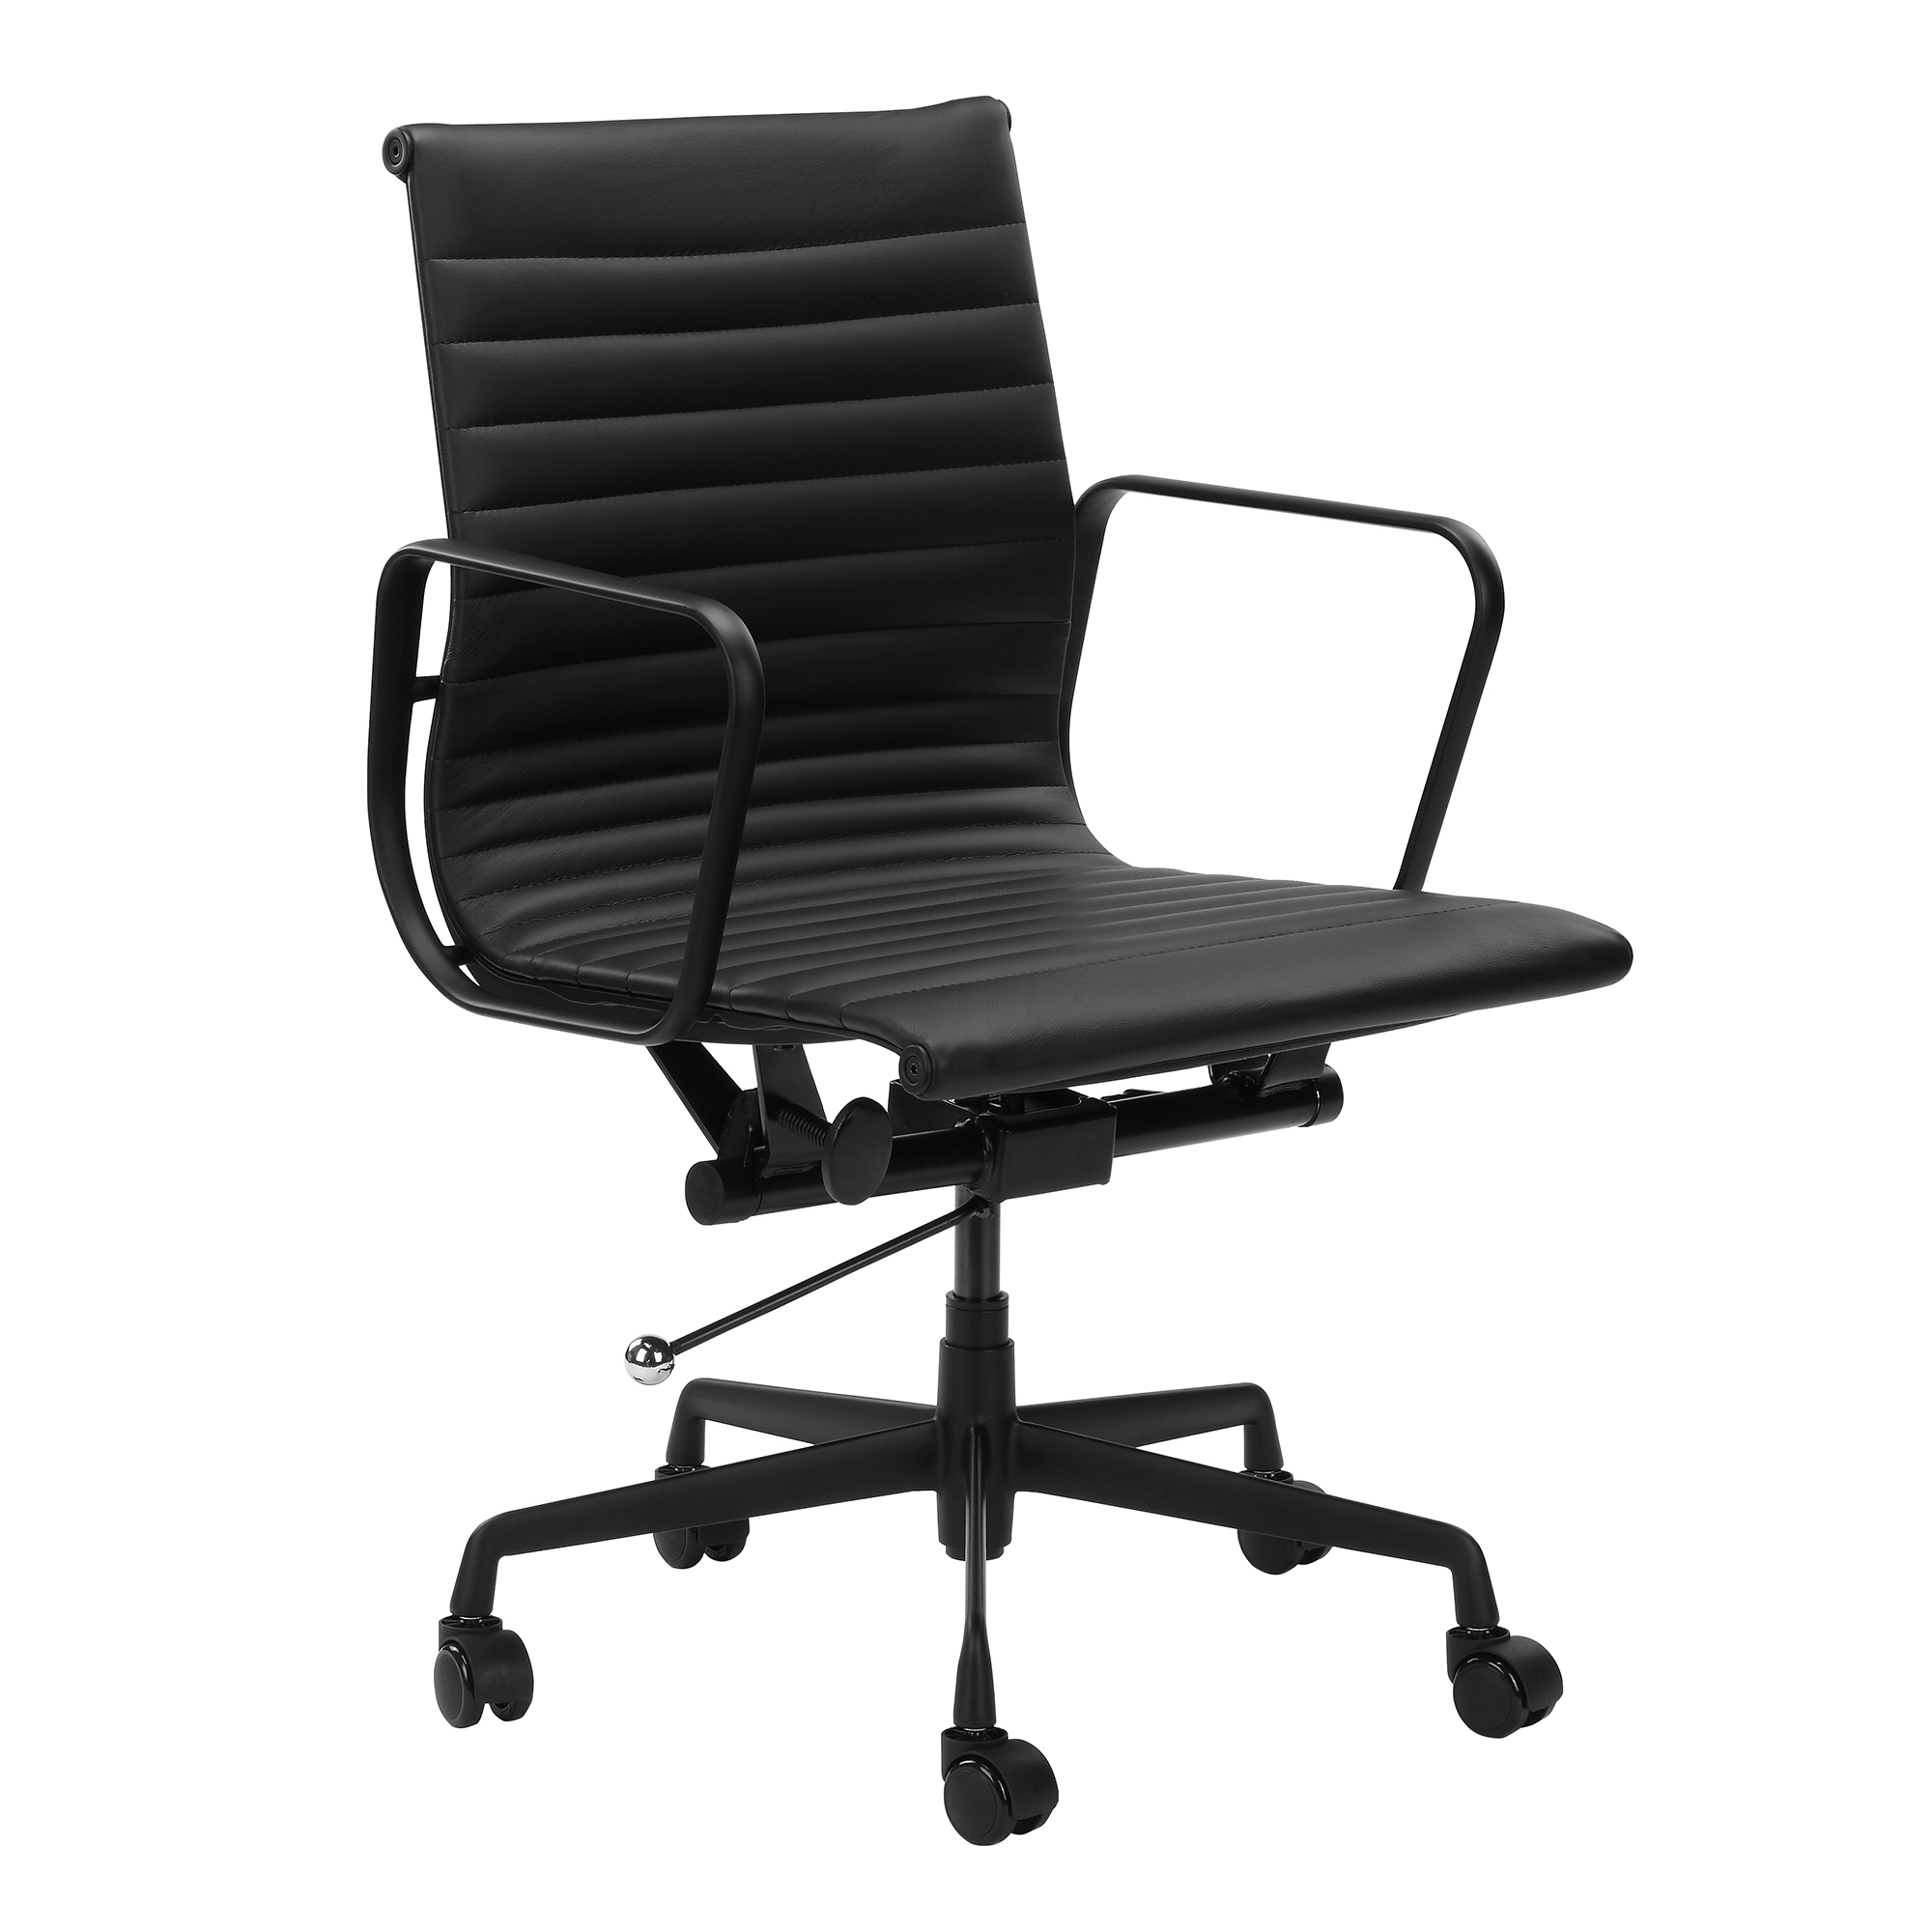 Eames Executive/Boardroom/Office Chair